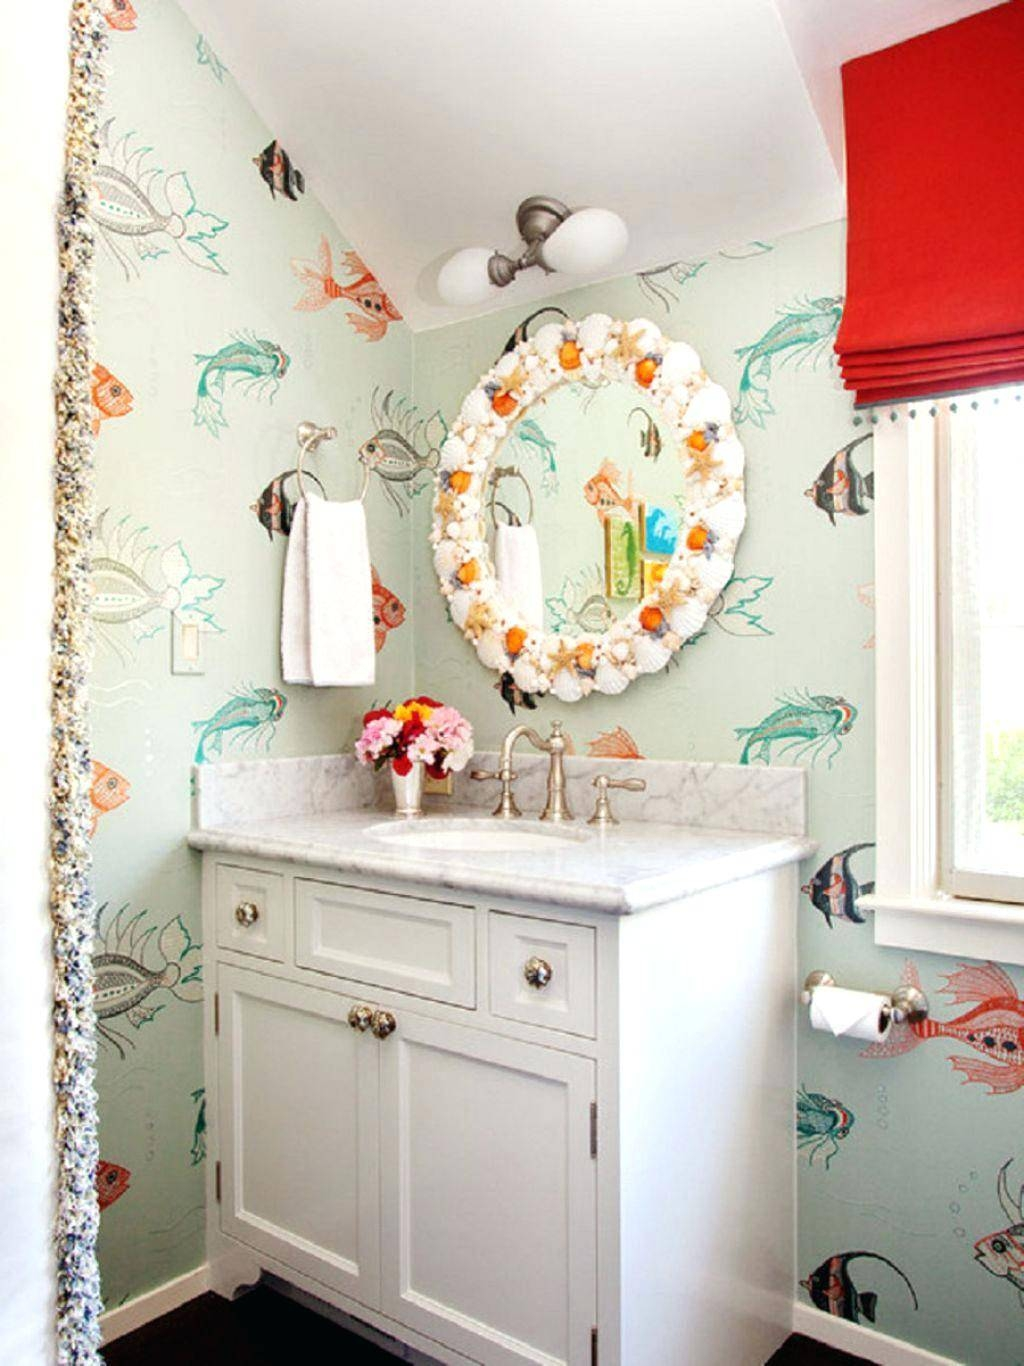 Kids Bathroom Wall Decals Bathroom Vibrant Red Roman Shade Also Intended For Best And Newest Fish Decals For Bathroom (View 12 of 30)